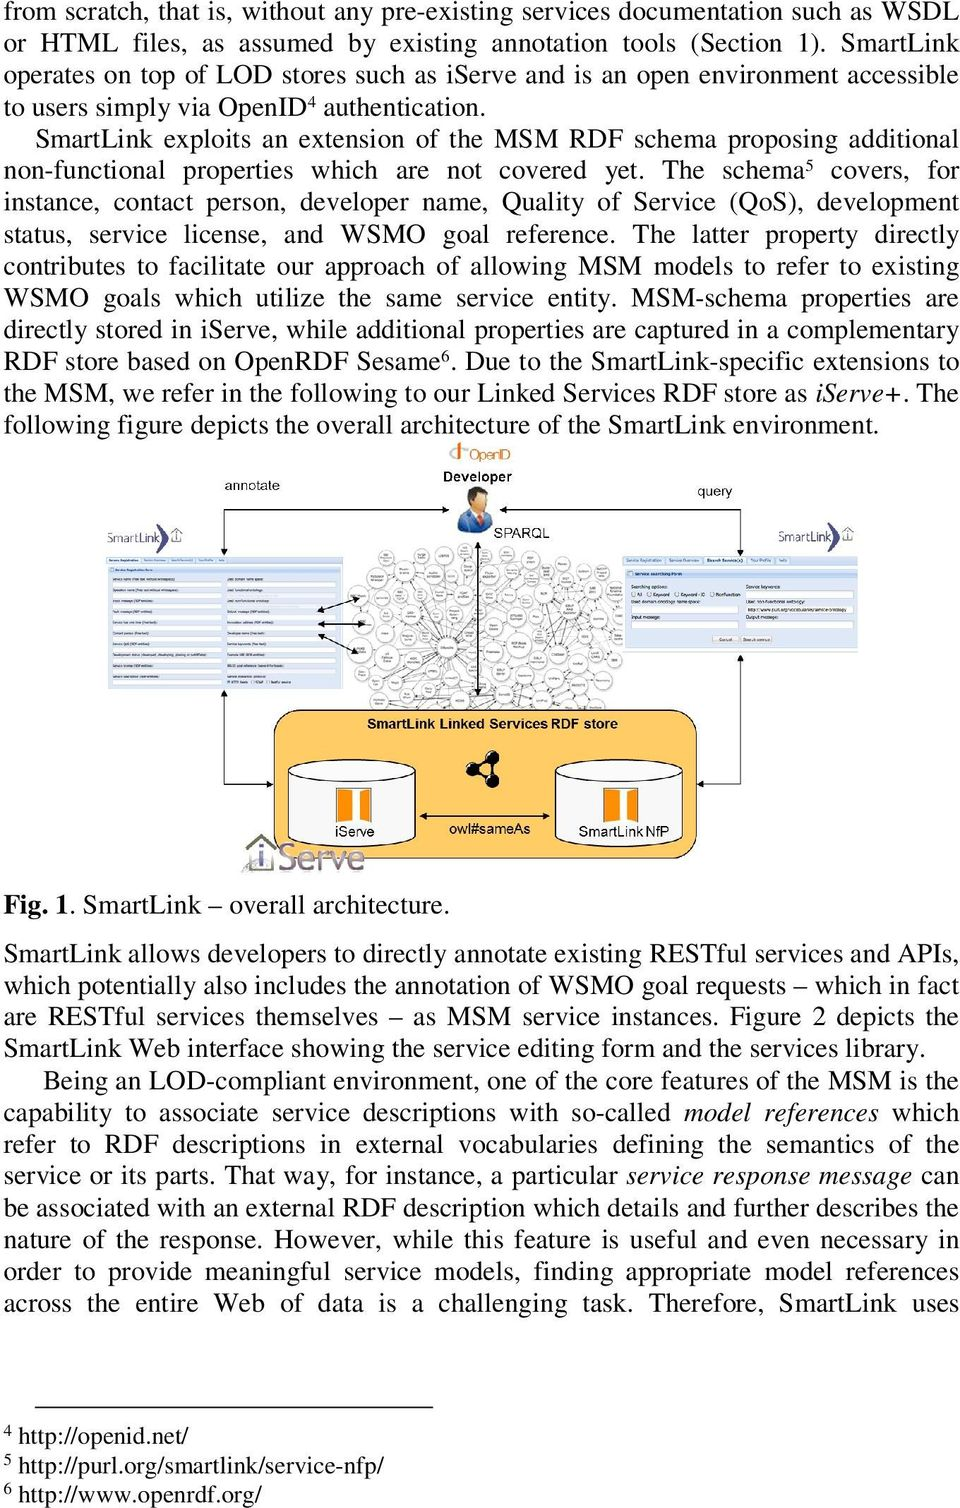 SmartLink exploits an extension of the MSM RDF schema proposing additional non-functional properties which are not covered yet.